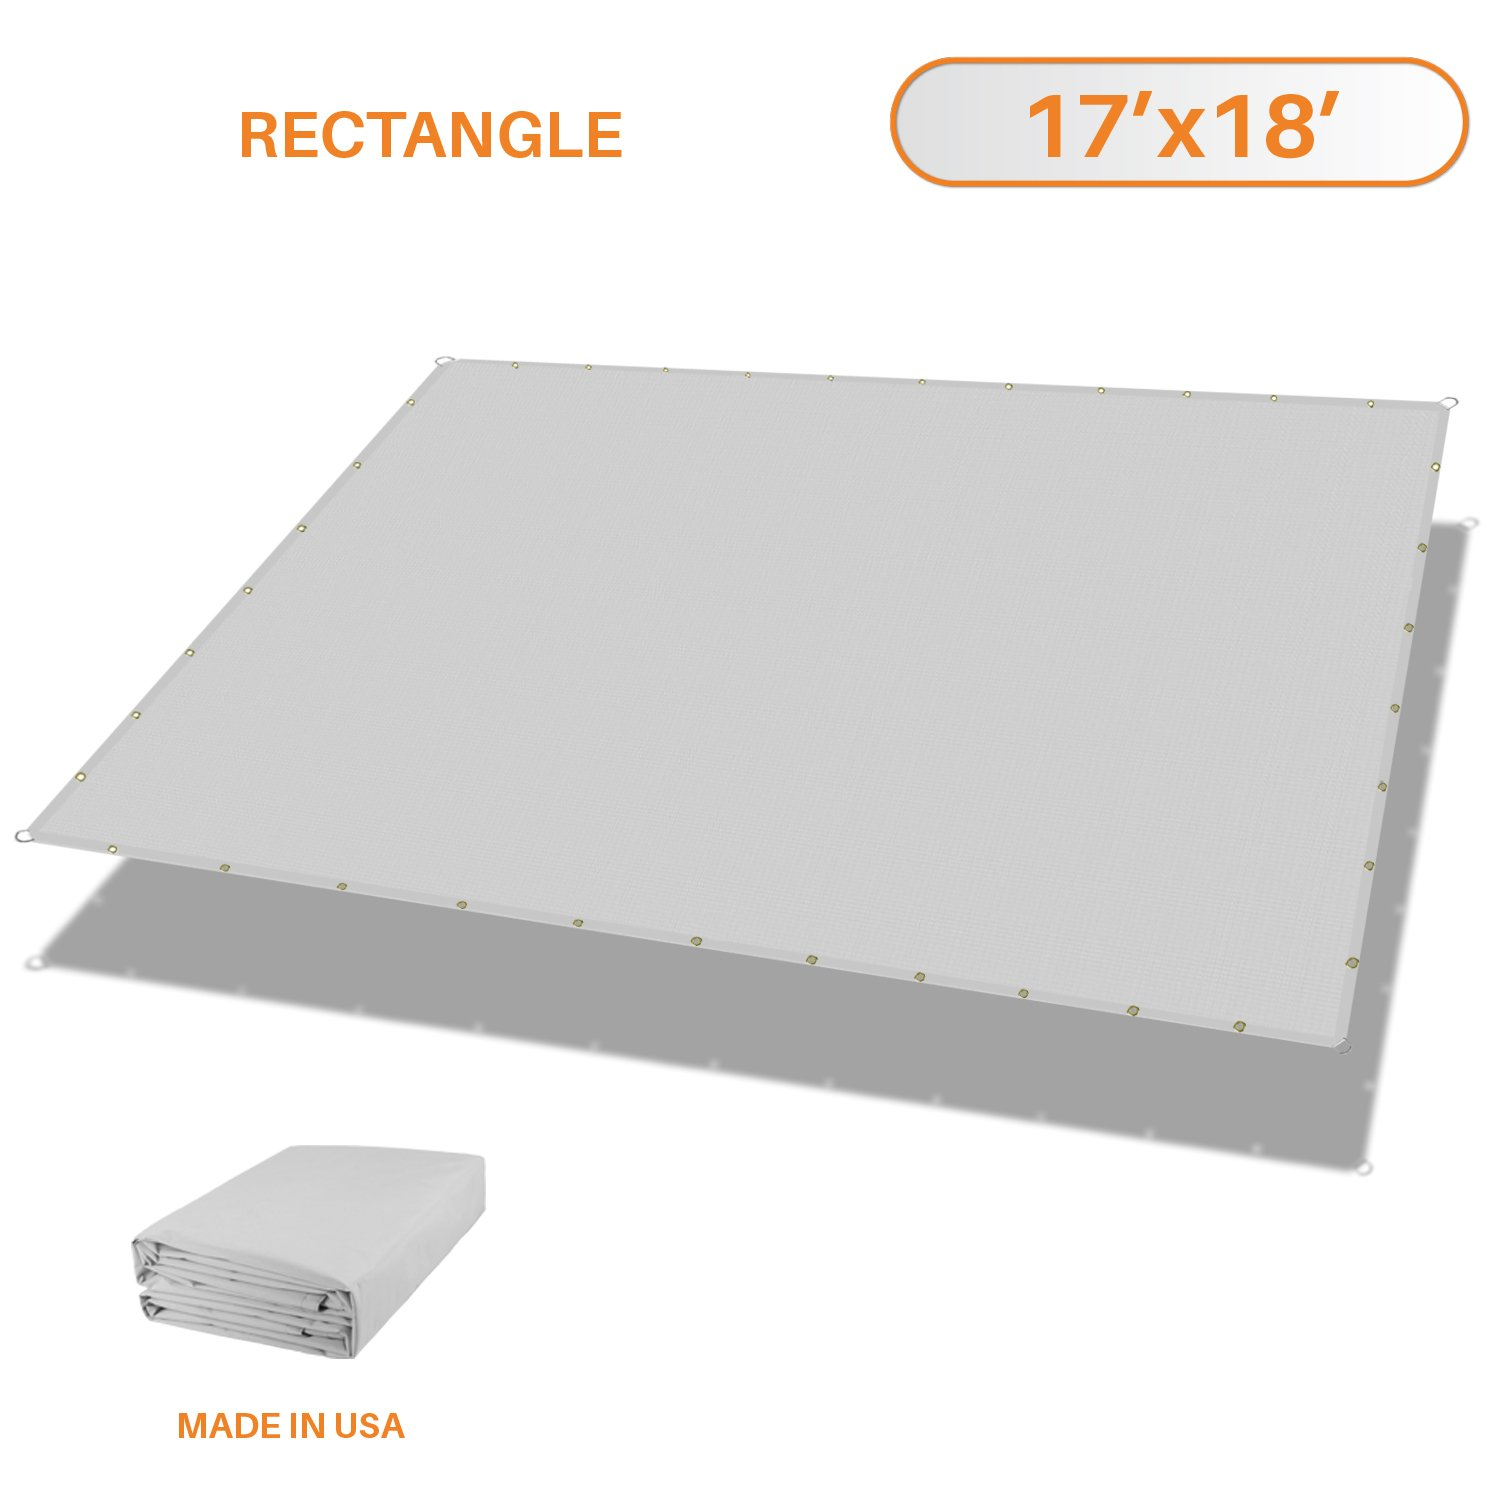 Sunshades Depot Tang 17' x 18' FT Waterproof Rectangle Sun Shade Sail 220 GSM Light Gray Straight Edge Canopy with Grommet UV Block Shade Fabric Pergola Cover Awning Customize Available